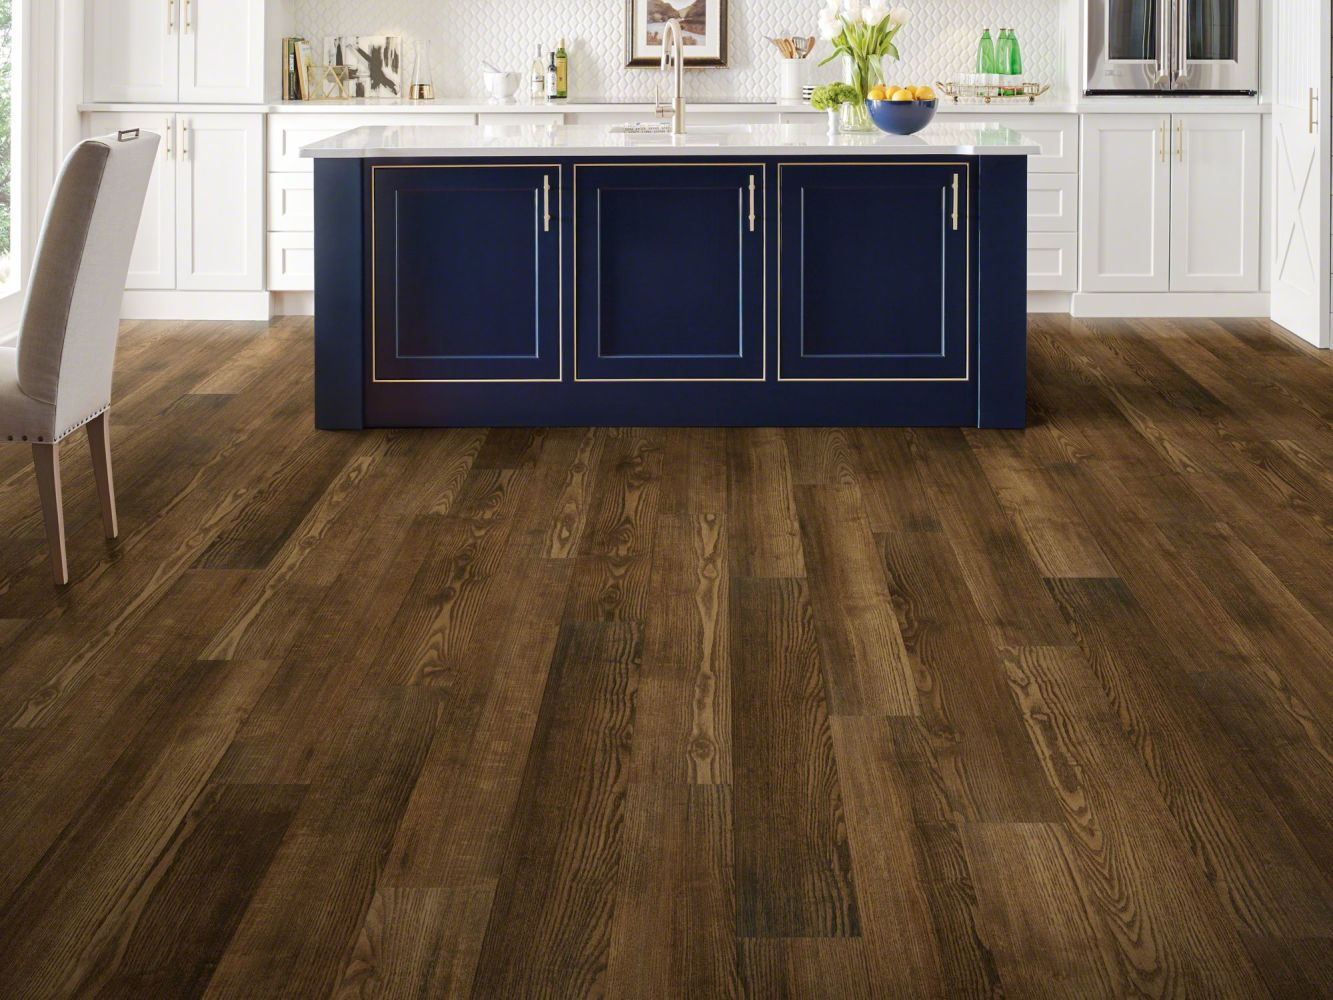 Philadelphia Commercial Vinyl Residential In The Grain II 30 Sandalwood 07003_5536V